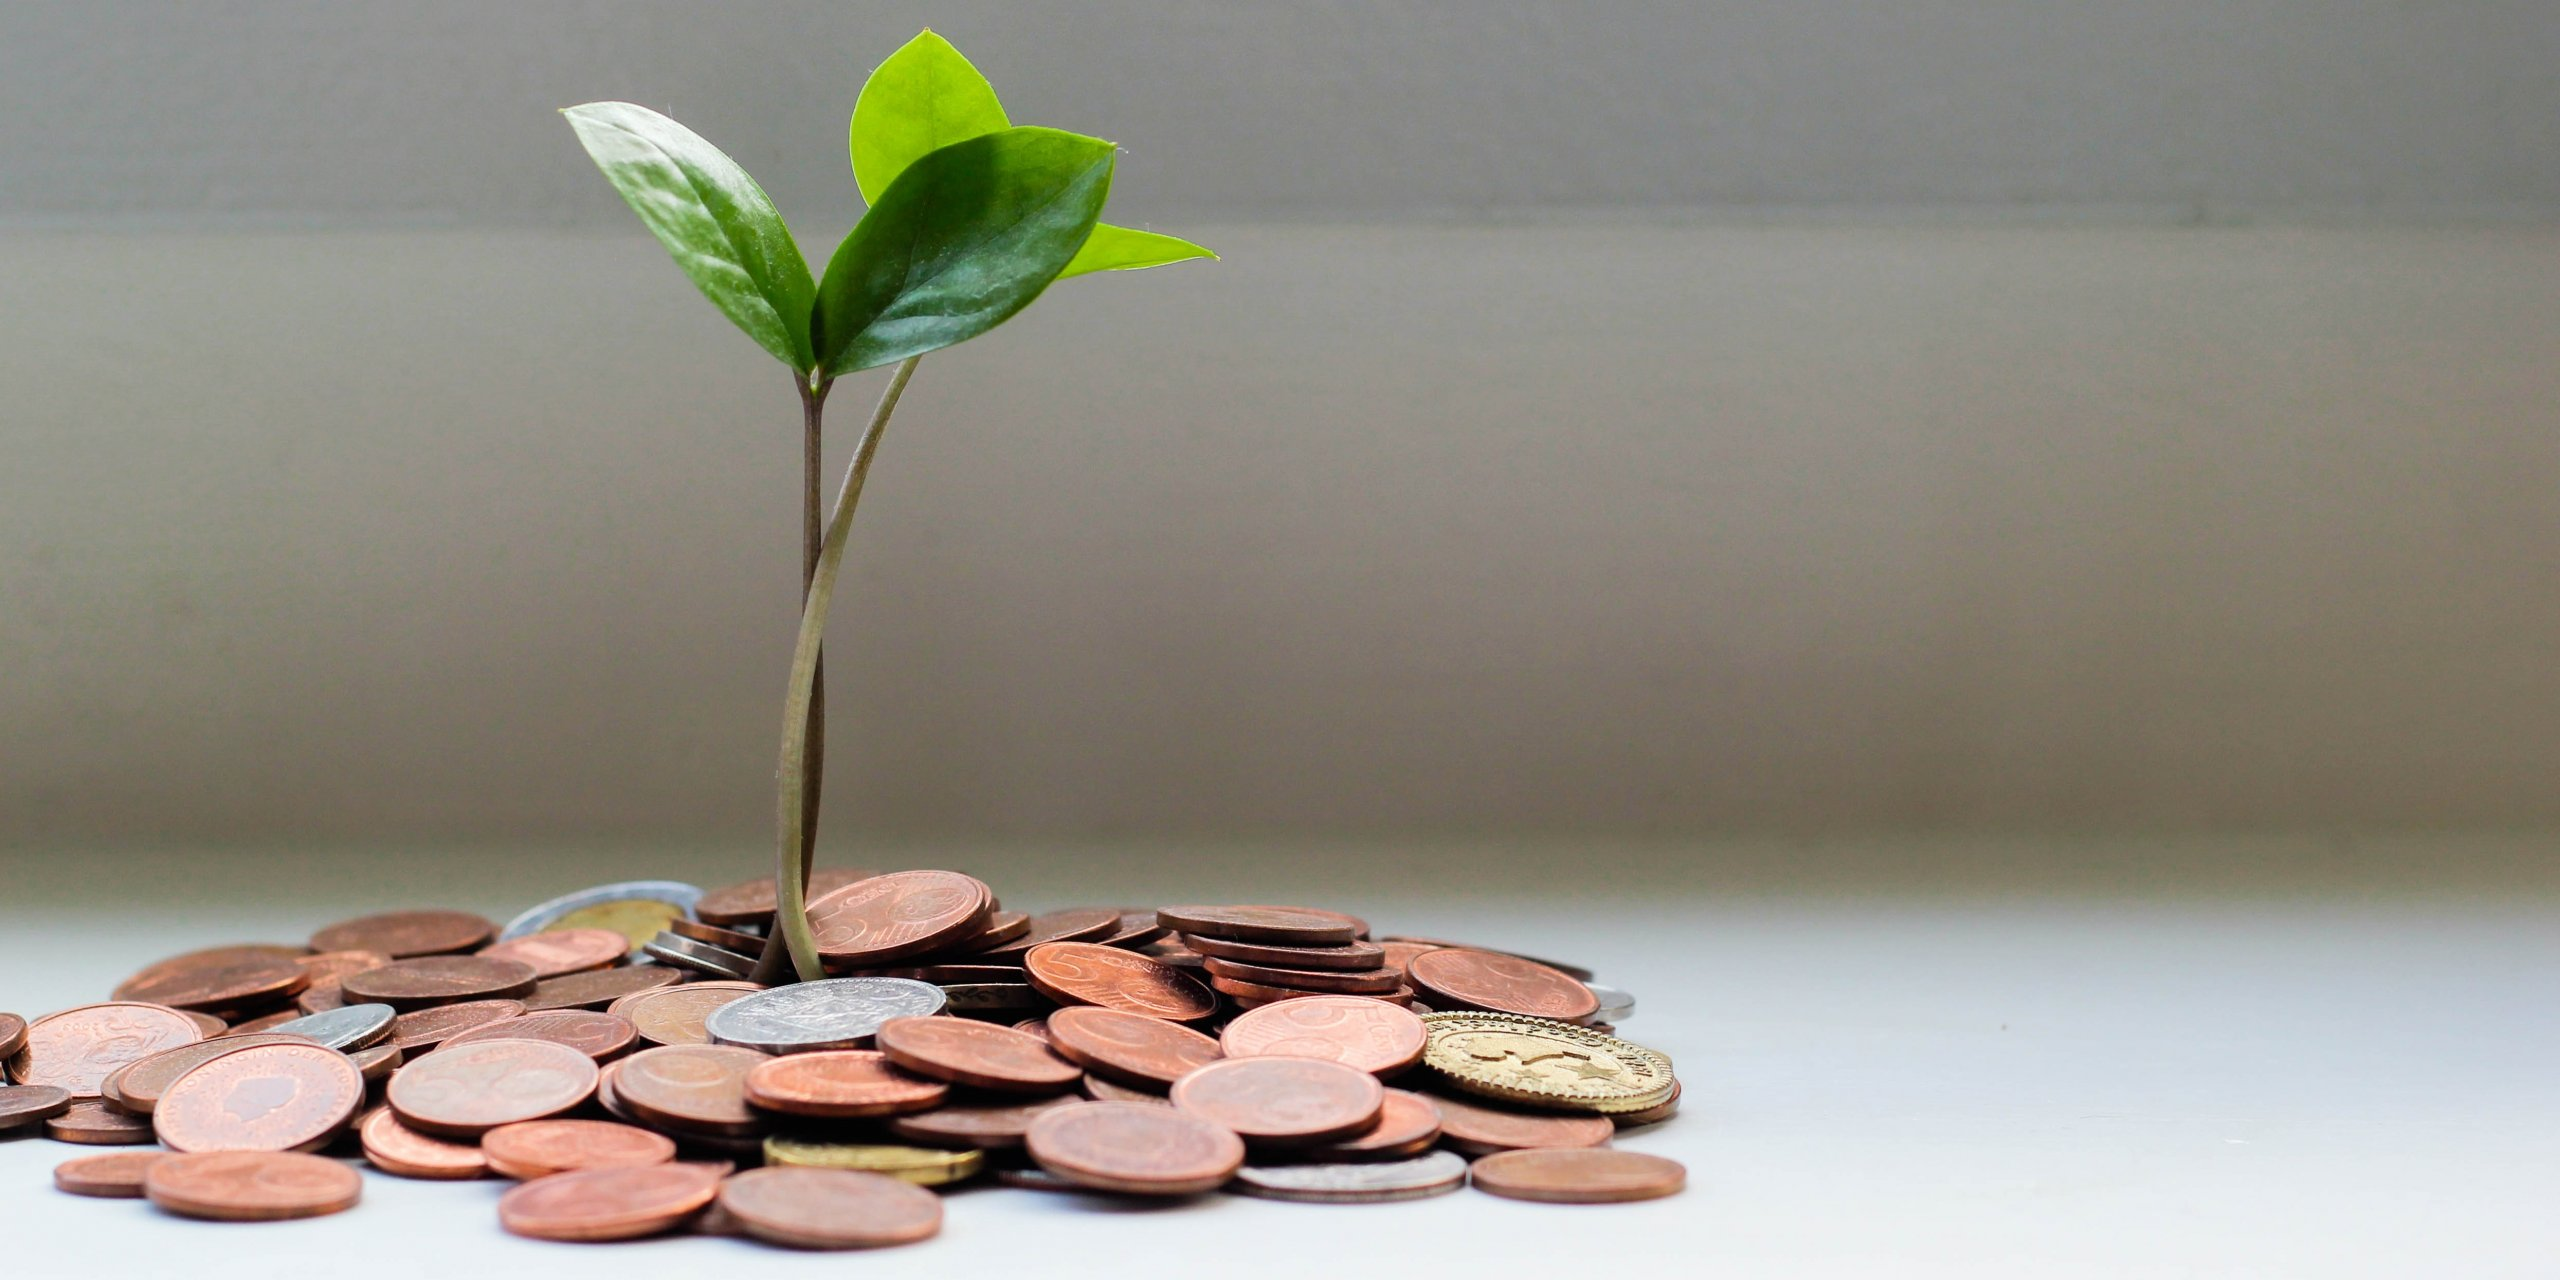 sapling and coins